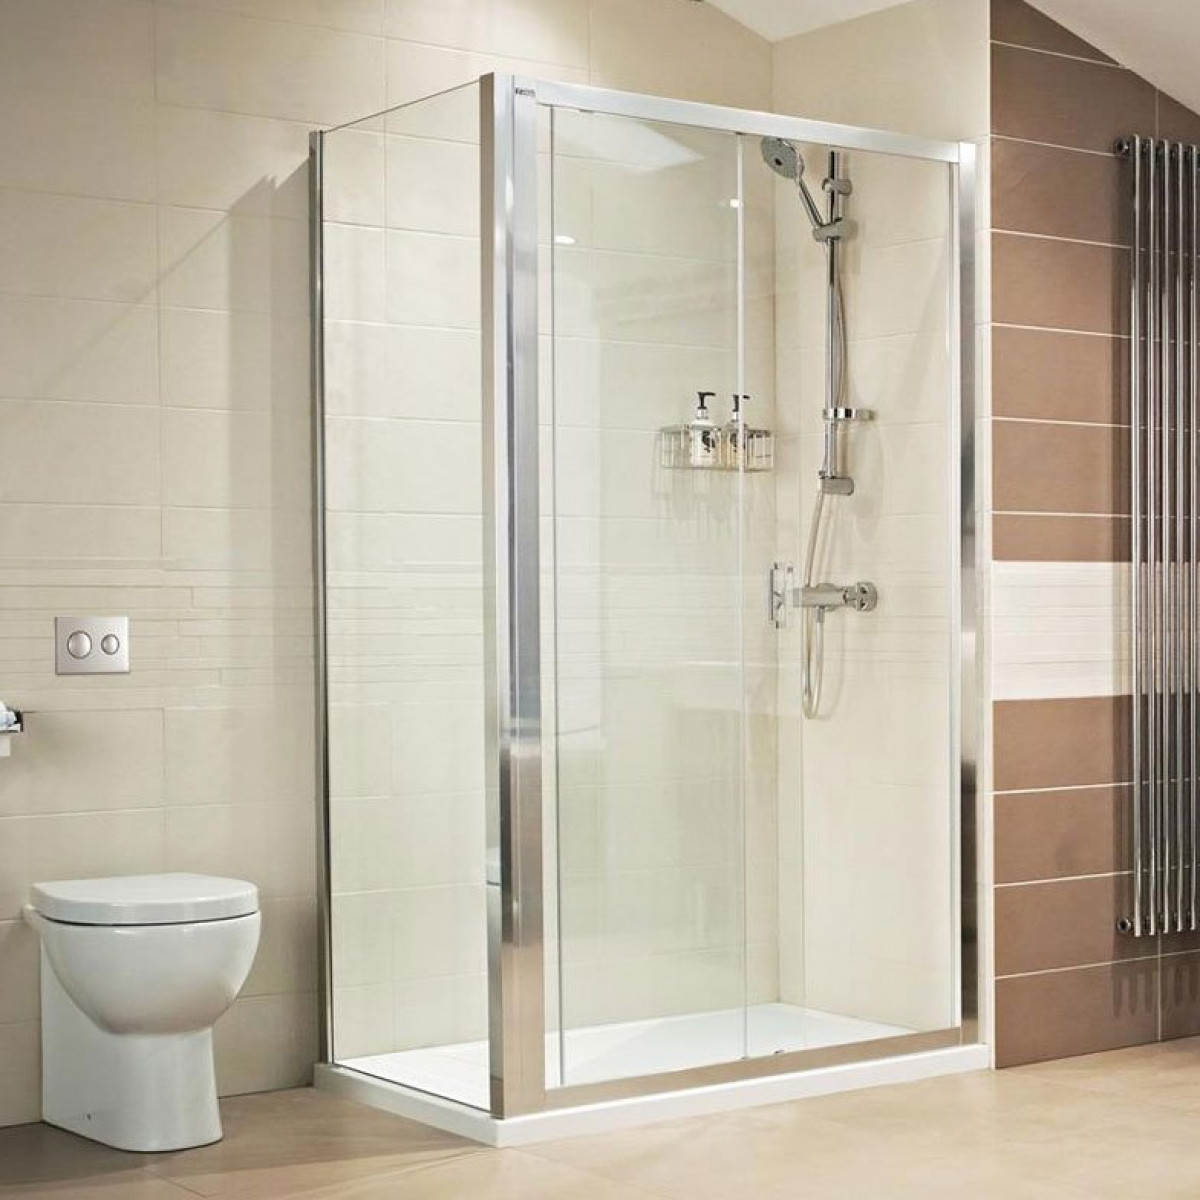 Roman Lumin8 1700mm Sliding Shower Door V8t1713s